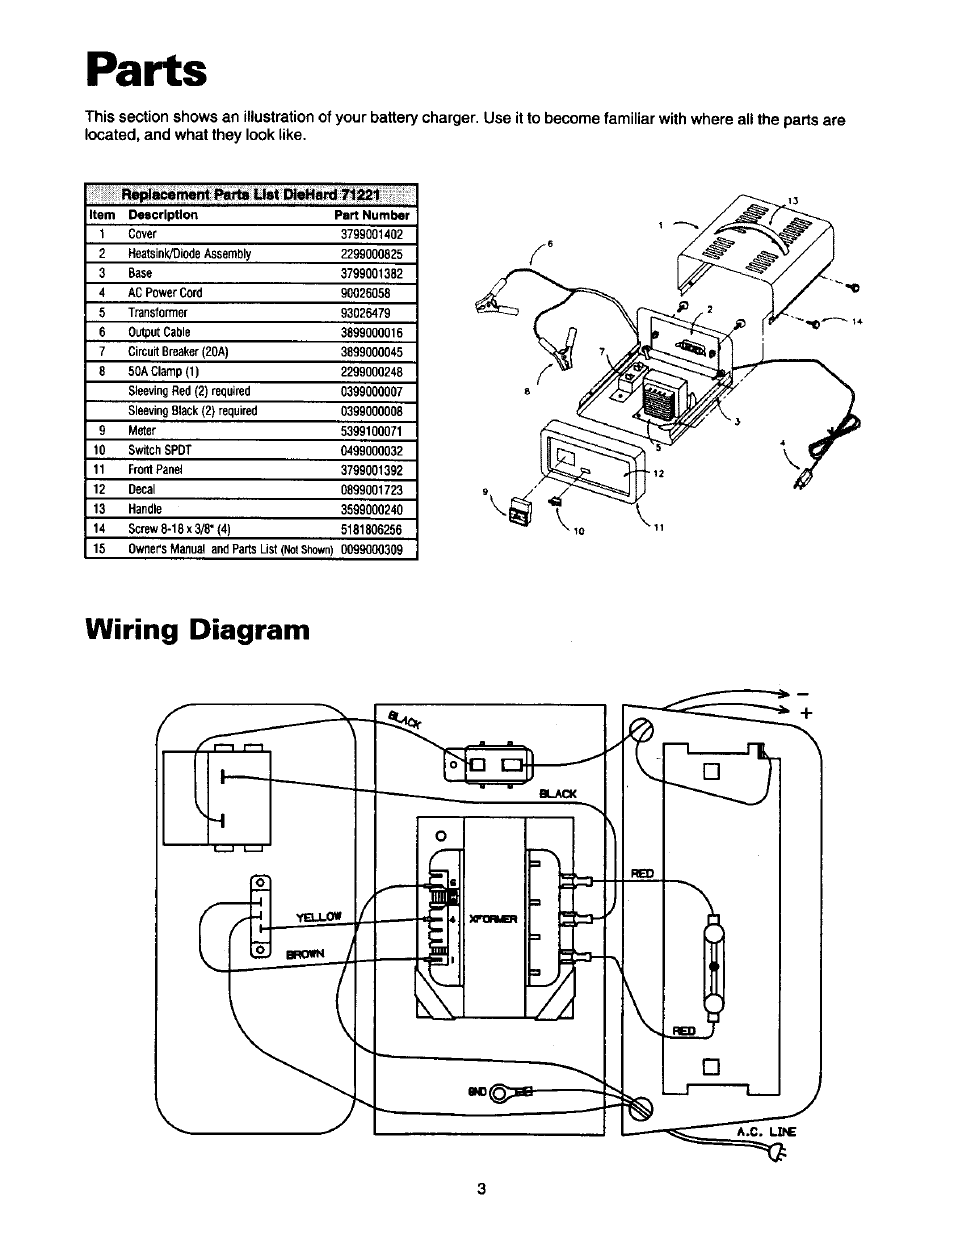 Sears Wiring Diagram Will Be A Thing Lawn Tractor For Battery Charger Artchinanet Com Suburban